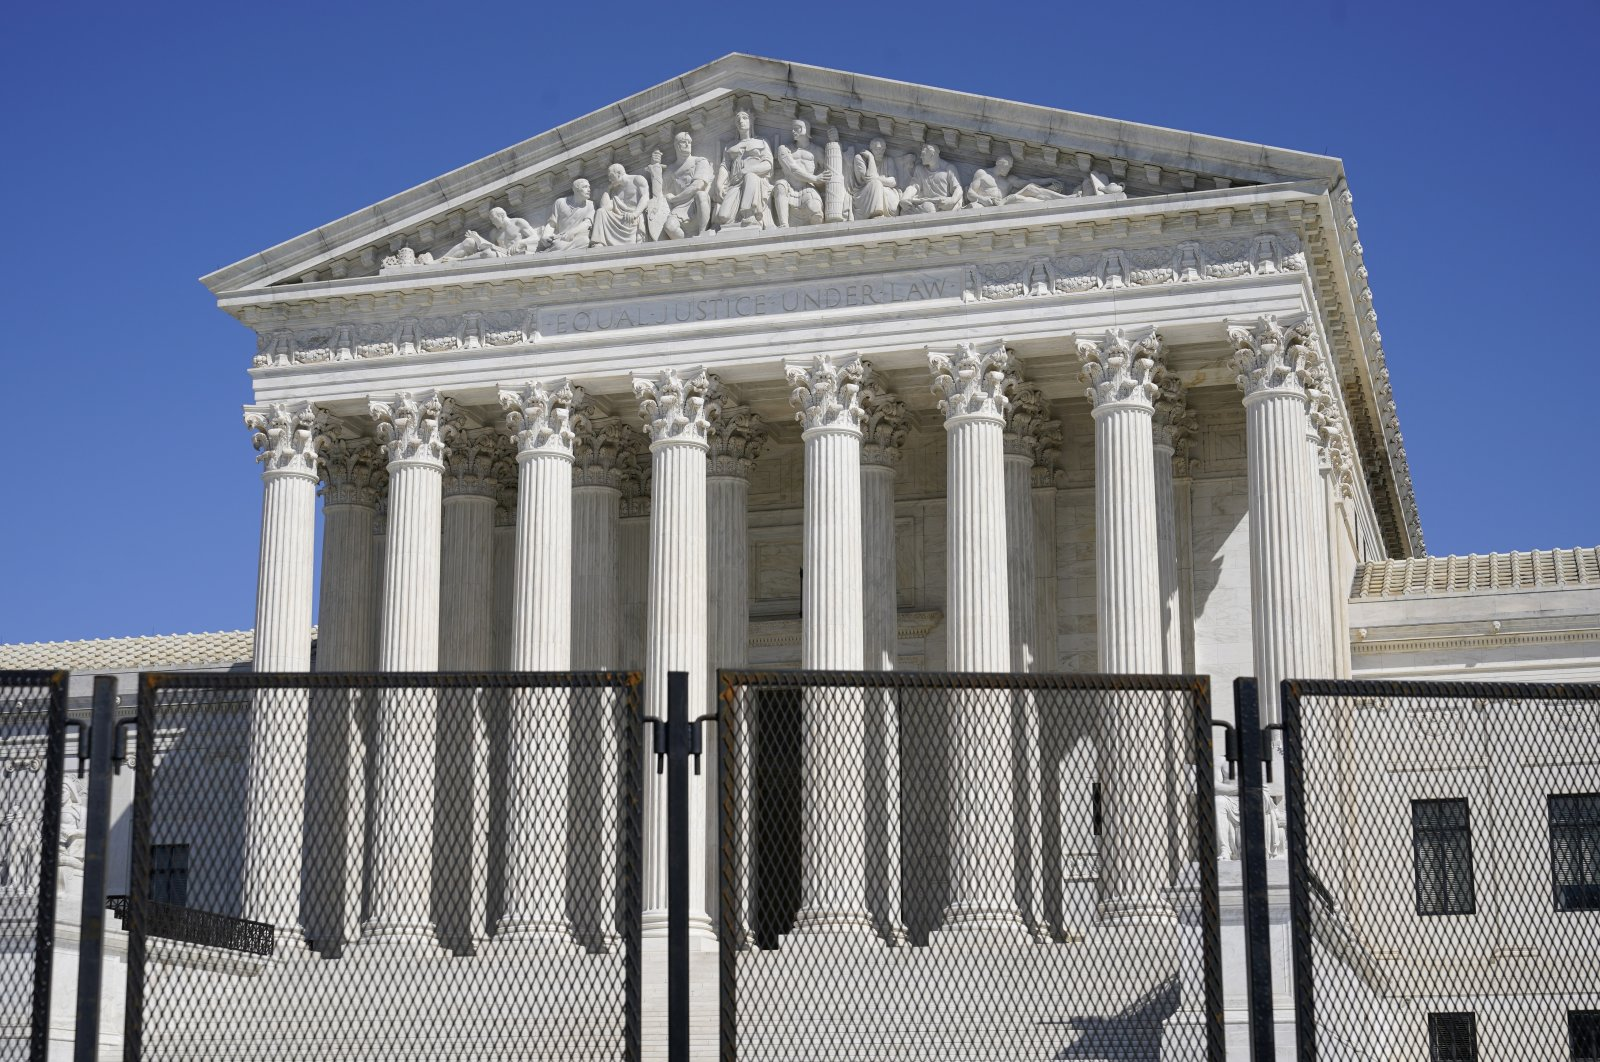 Security fencing surrounds the Supreme Court building on Capitol Hill in Washington, U.S., March 21, 2021. (AP Photo)